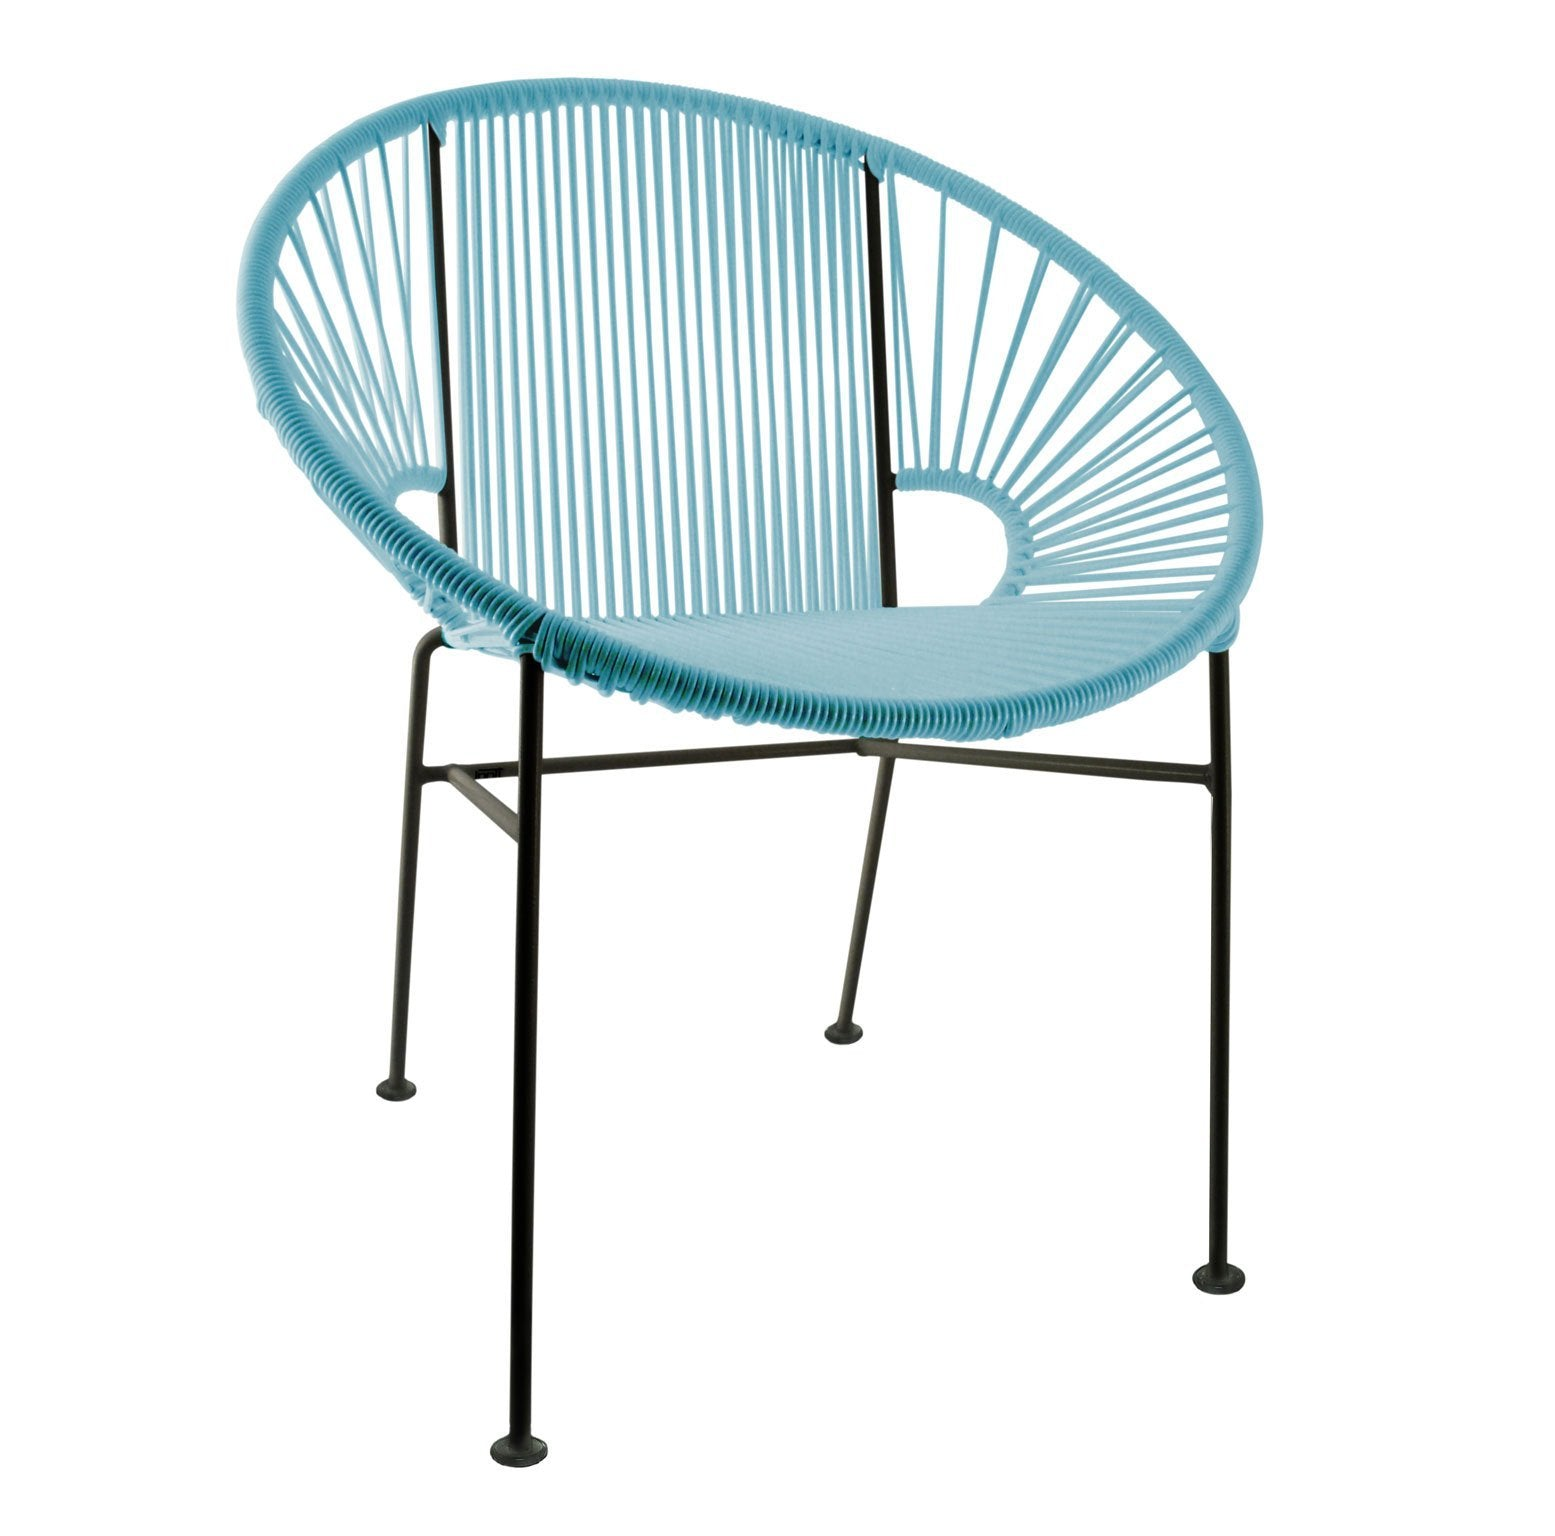 Shop for Innit Designs at Lifeix Design Bar Stool Chair dining